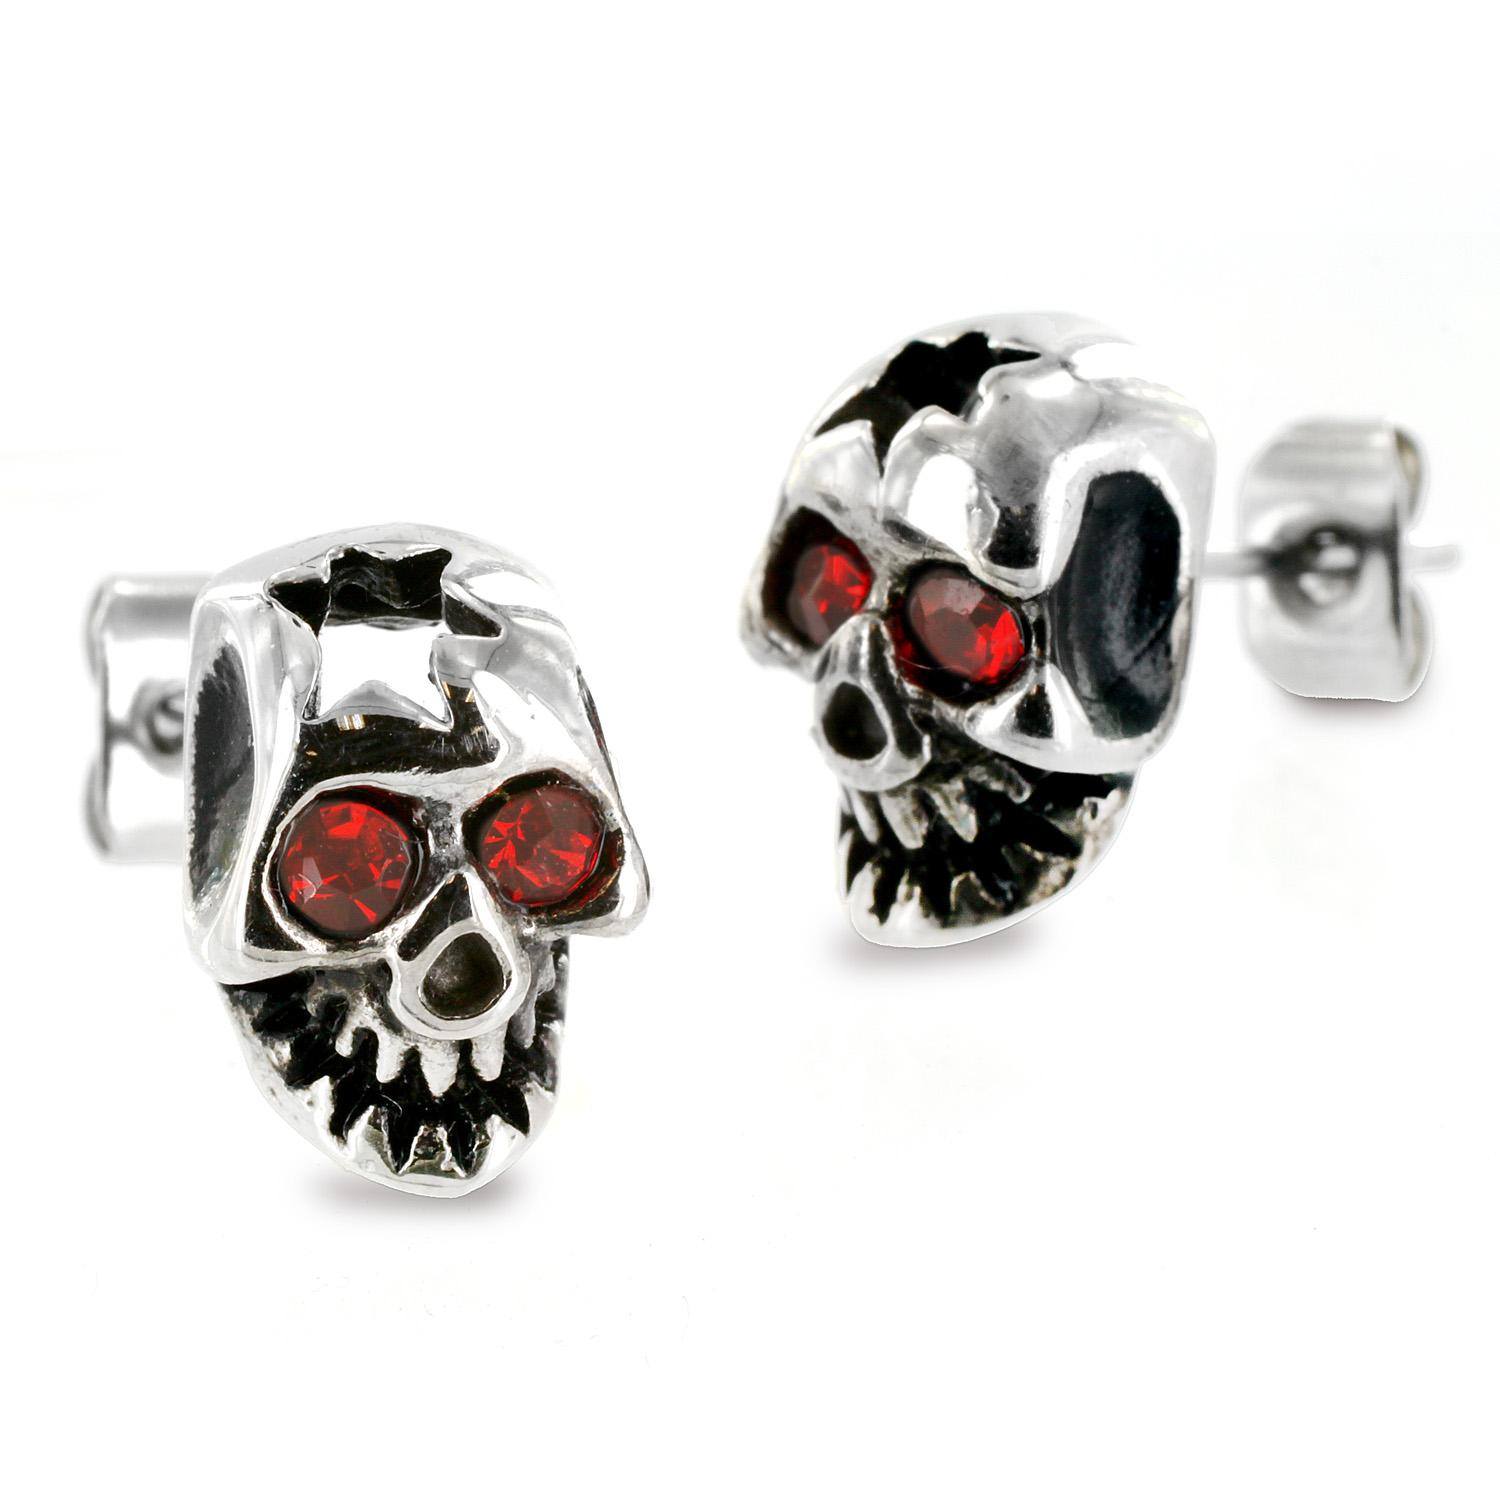 Pair of 316L Surgical Stainless Cracked Skull Red CZ Eyes Stud Earring